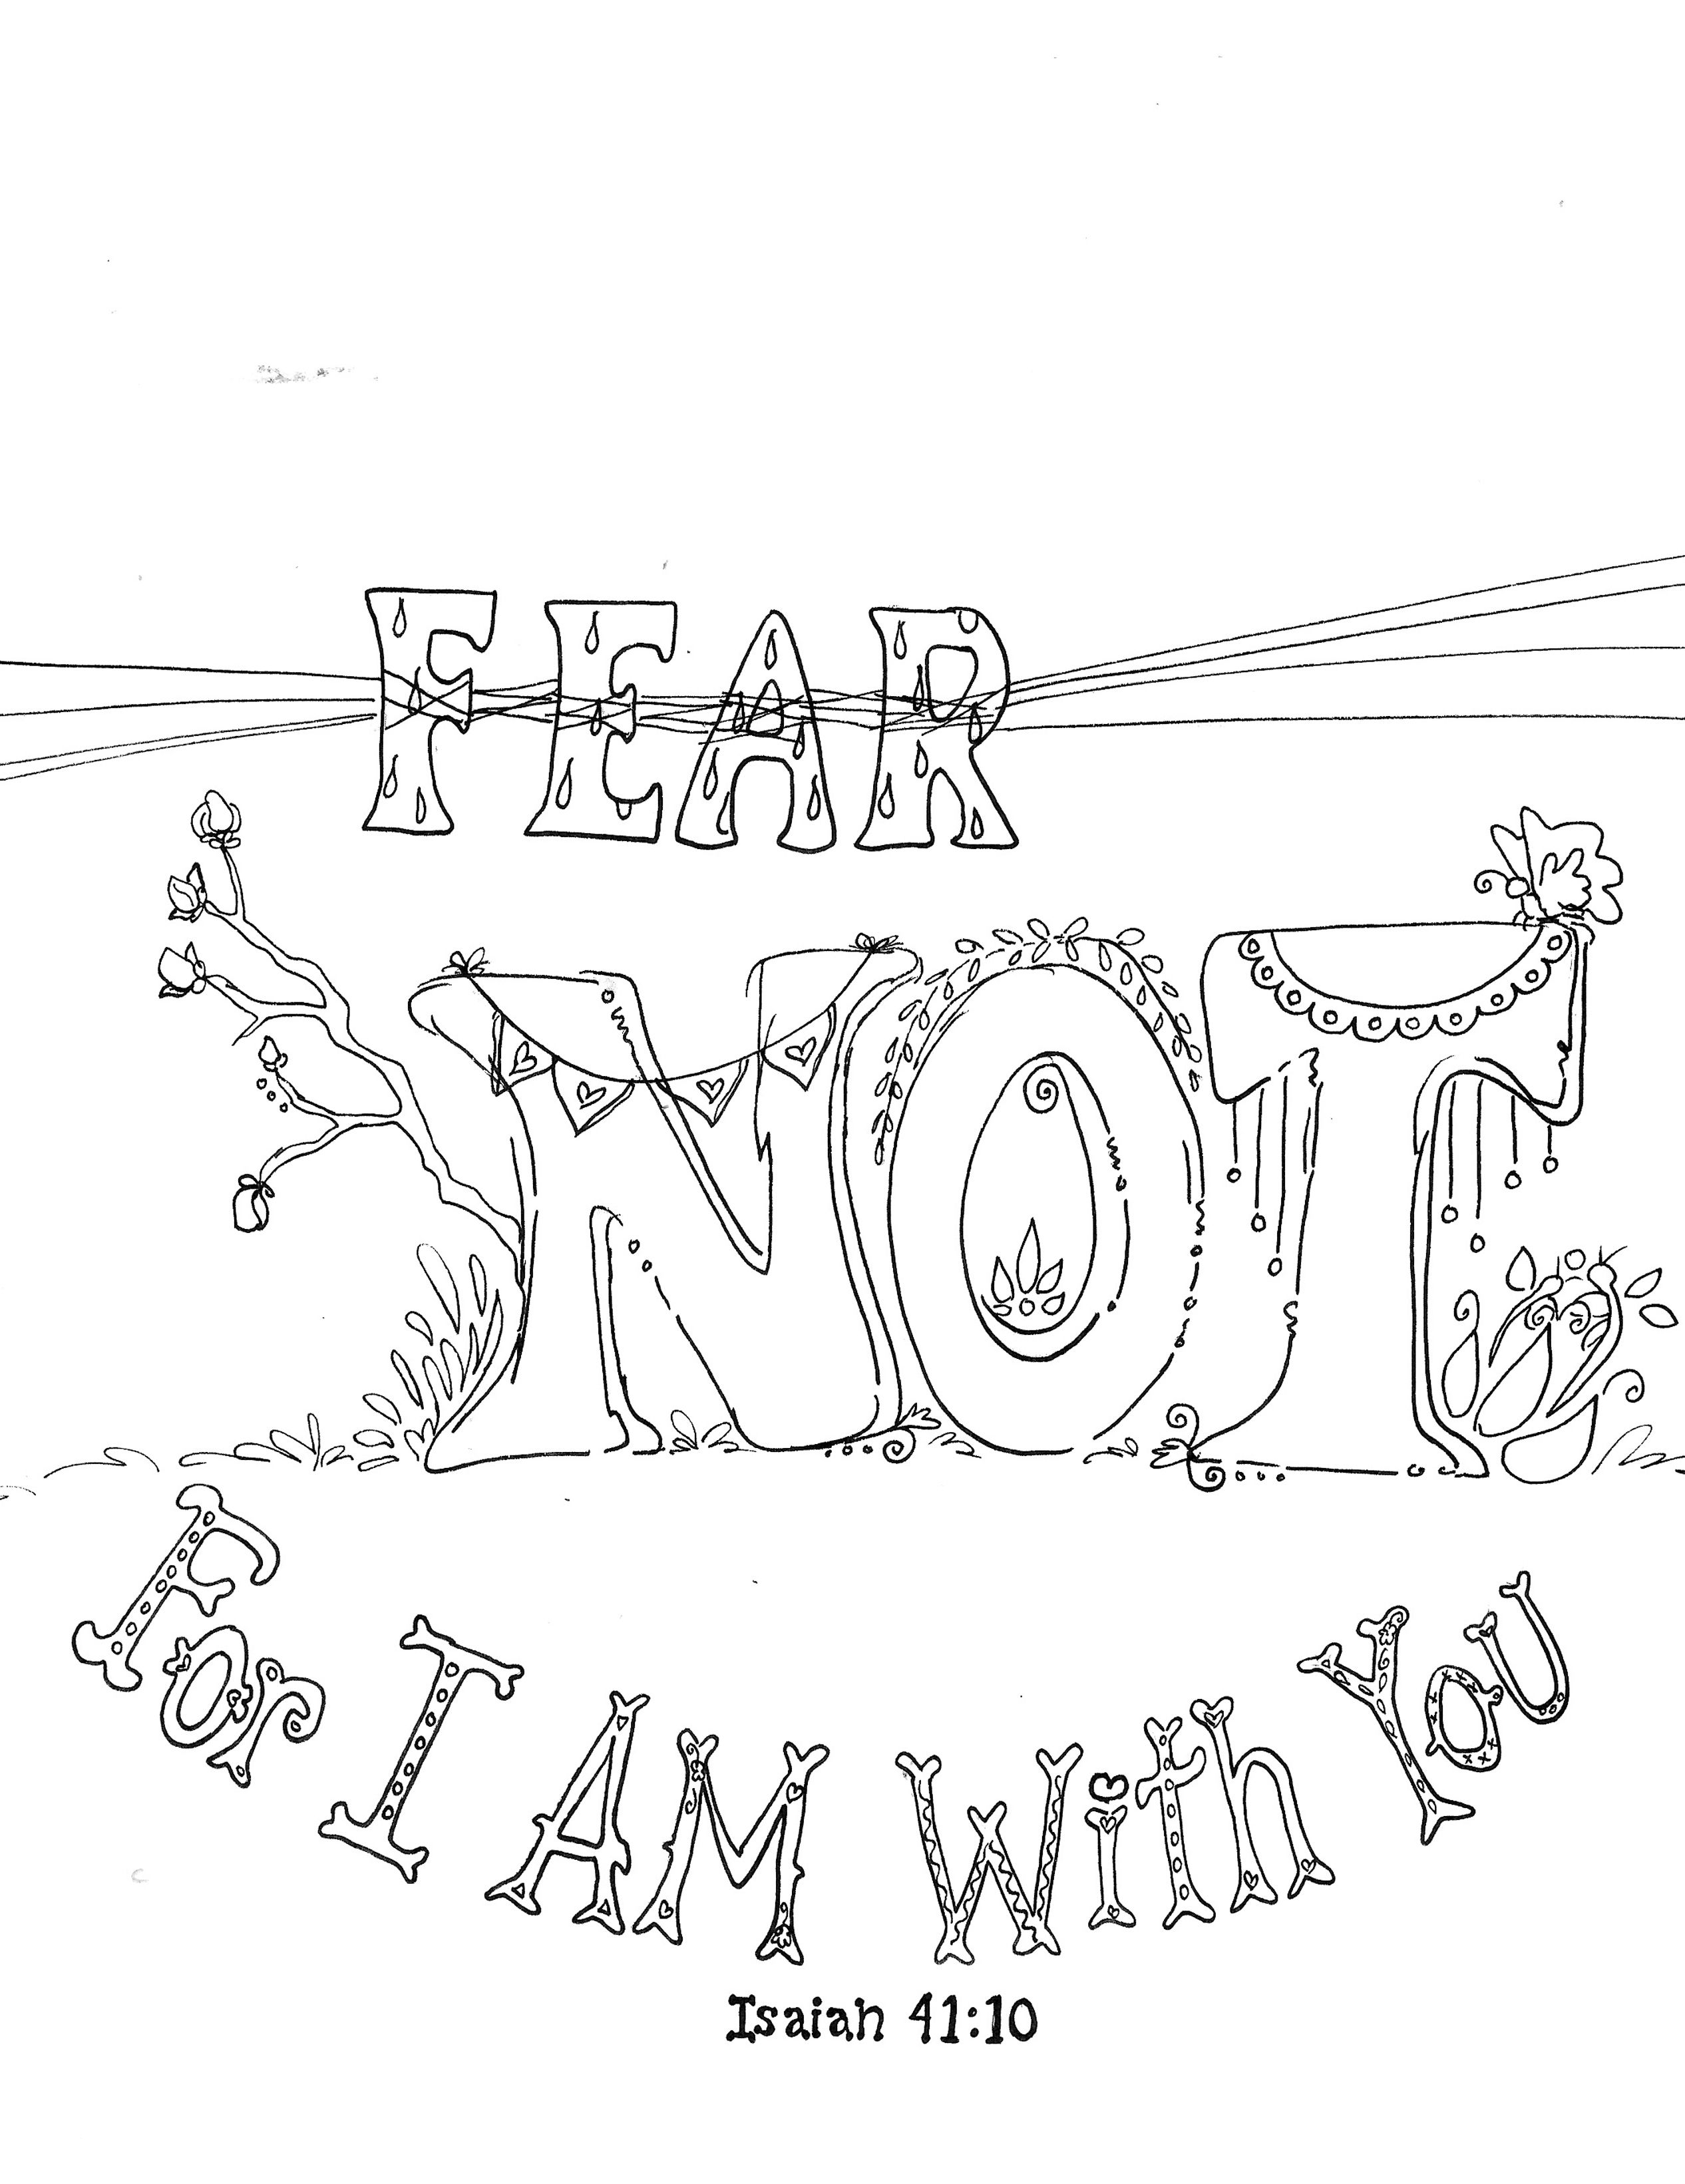 Lord You Always Make A Way To Escape Fear Not XoxFREE Scripture Coloring Pages Printable 8x10 Zenspirations Color And Reflect On The Bible Gods